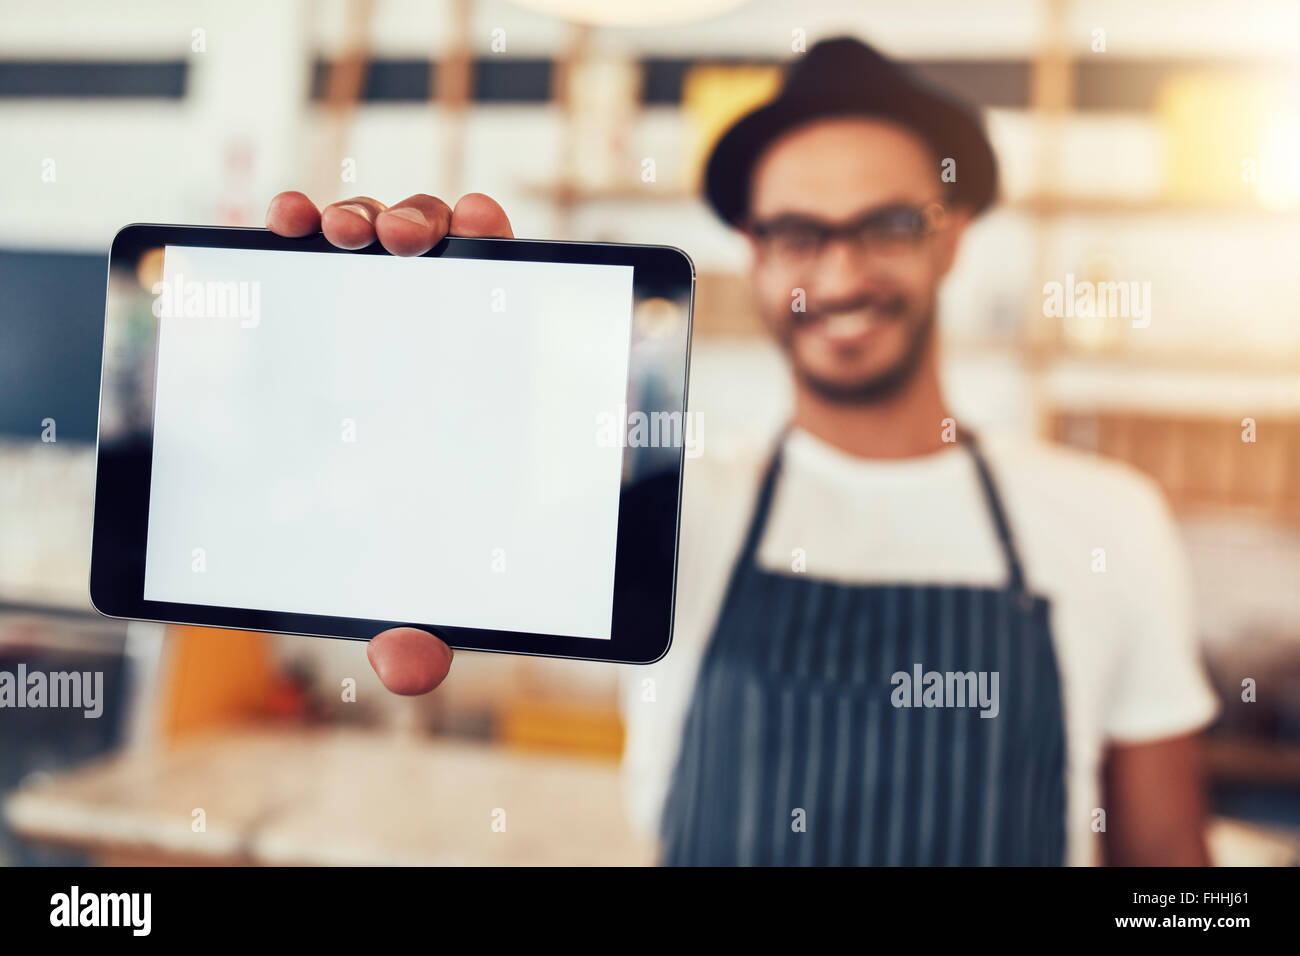 Close up portrait of a man holding up a digital tablet with a blank display. Man working in cafe showing a touch - Stock Image